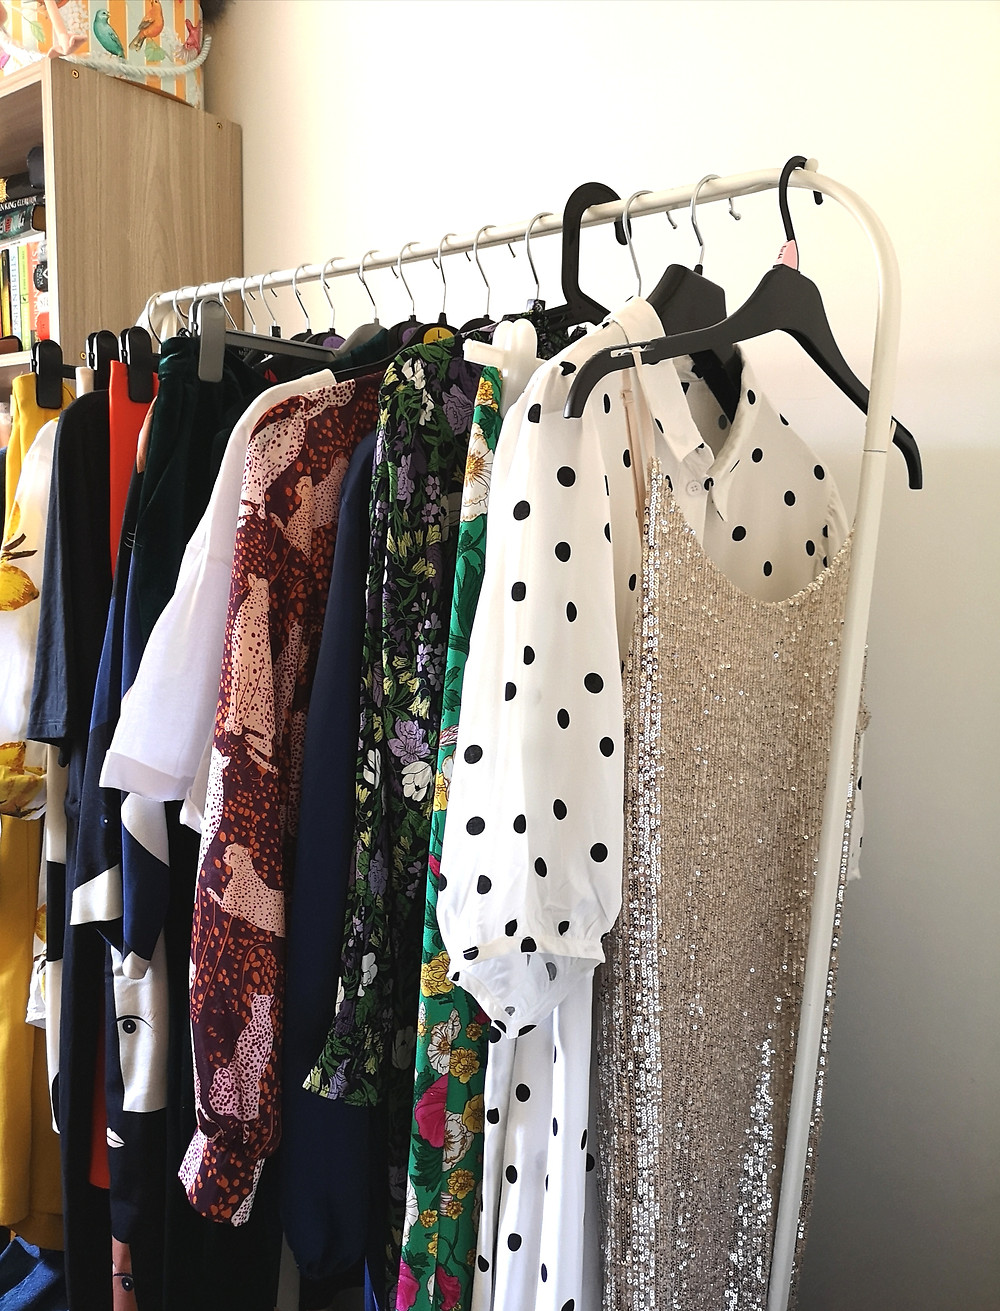 Clothes hang on a white metal rail against a white wall and wooden bookcase. The clothes are all different patterns, there is a gold sequinned dress, a black and white polka dot dress and floral prints.